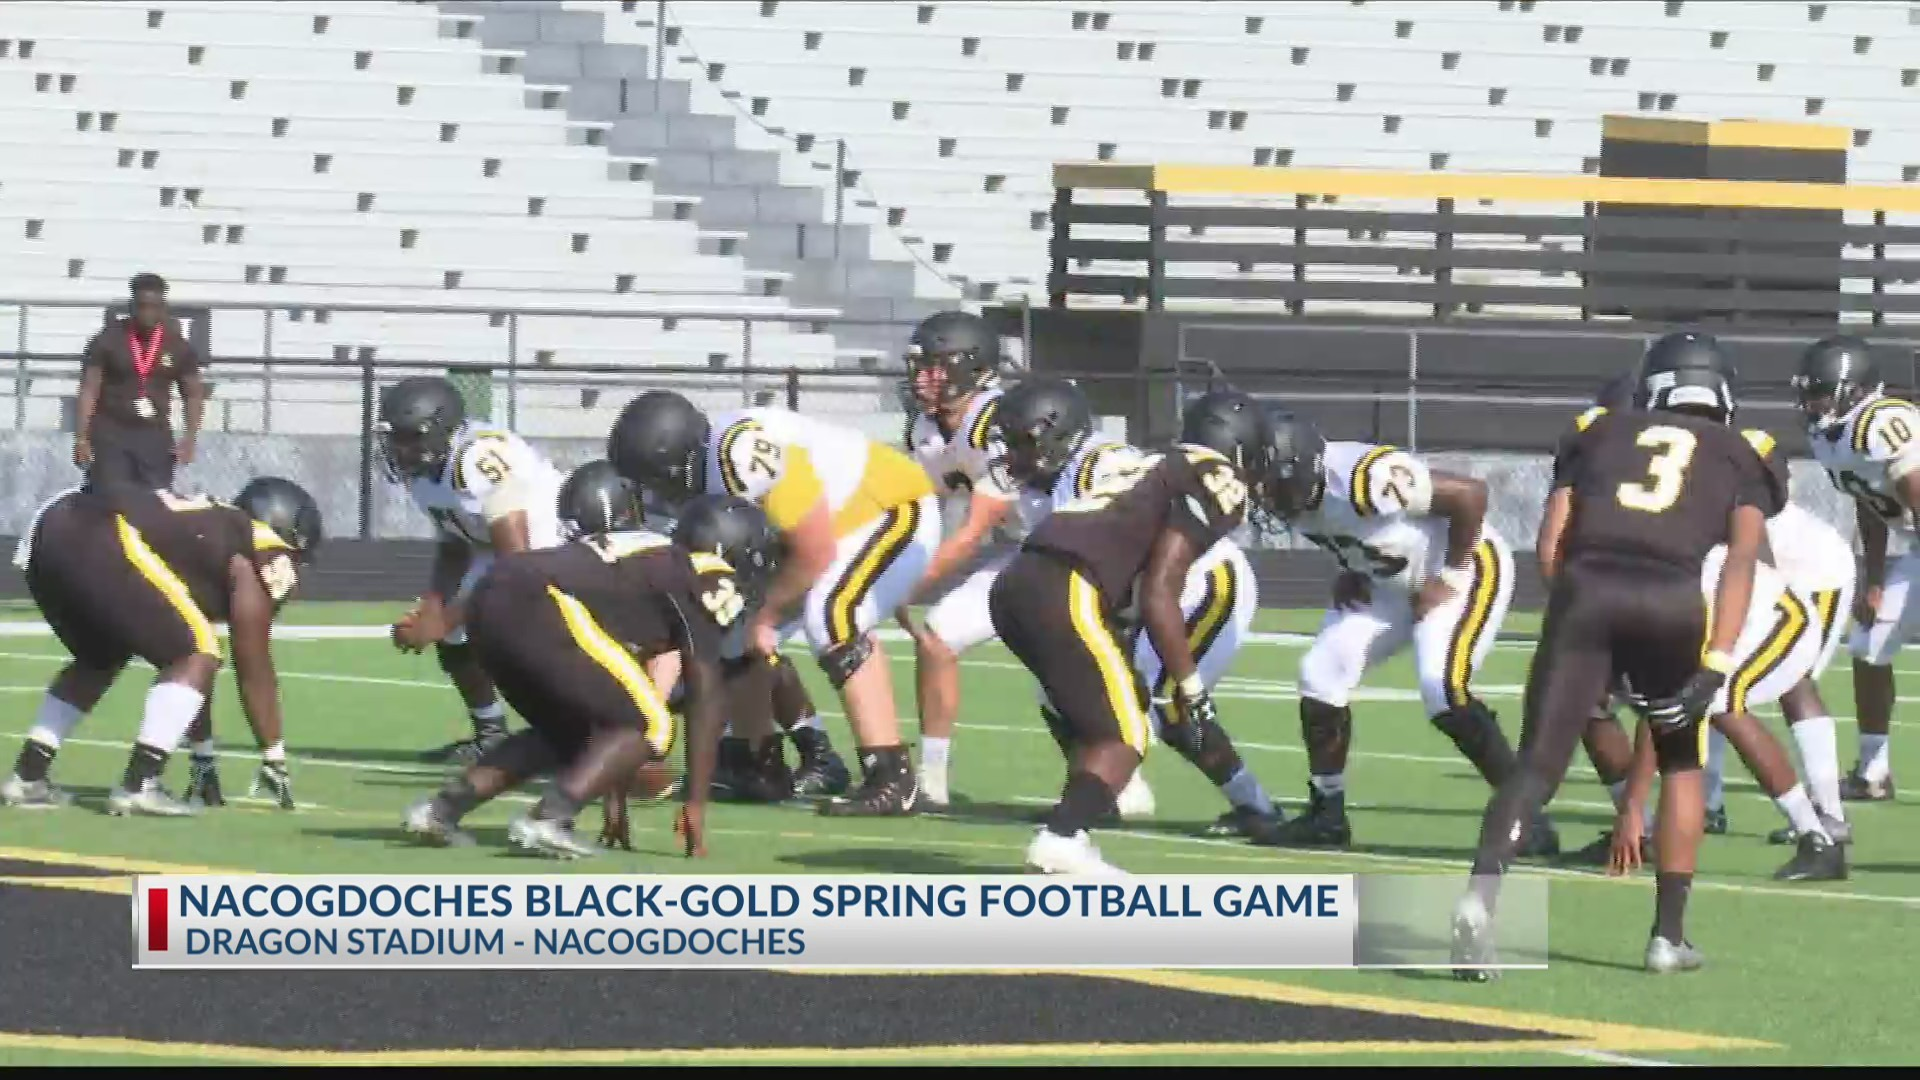 Nacogdoches_has_solid_spring_game_showin_0_20190524044439